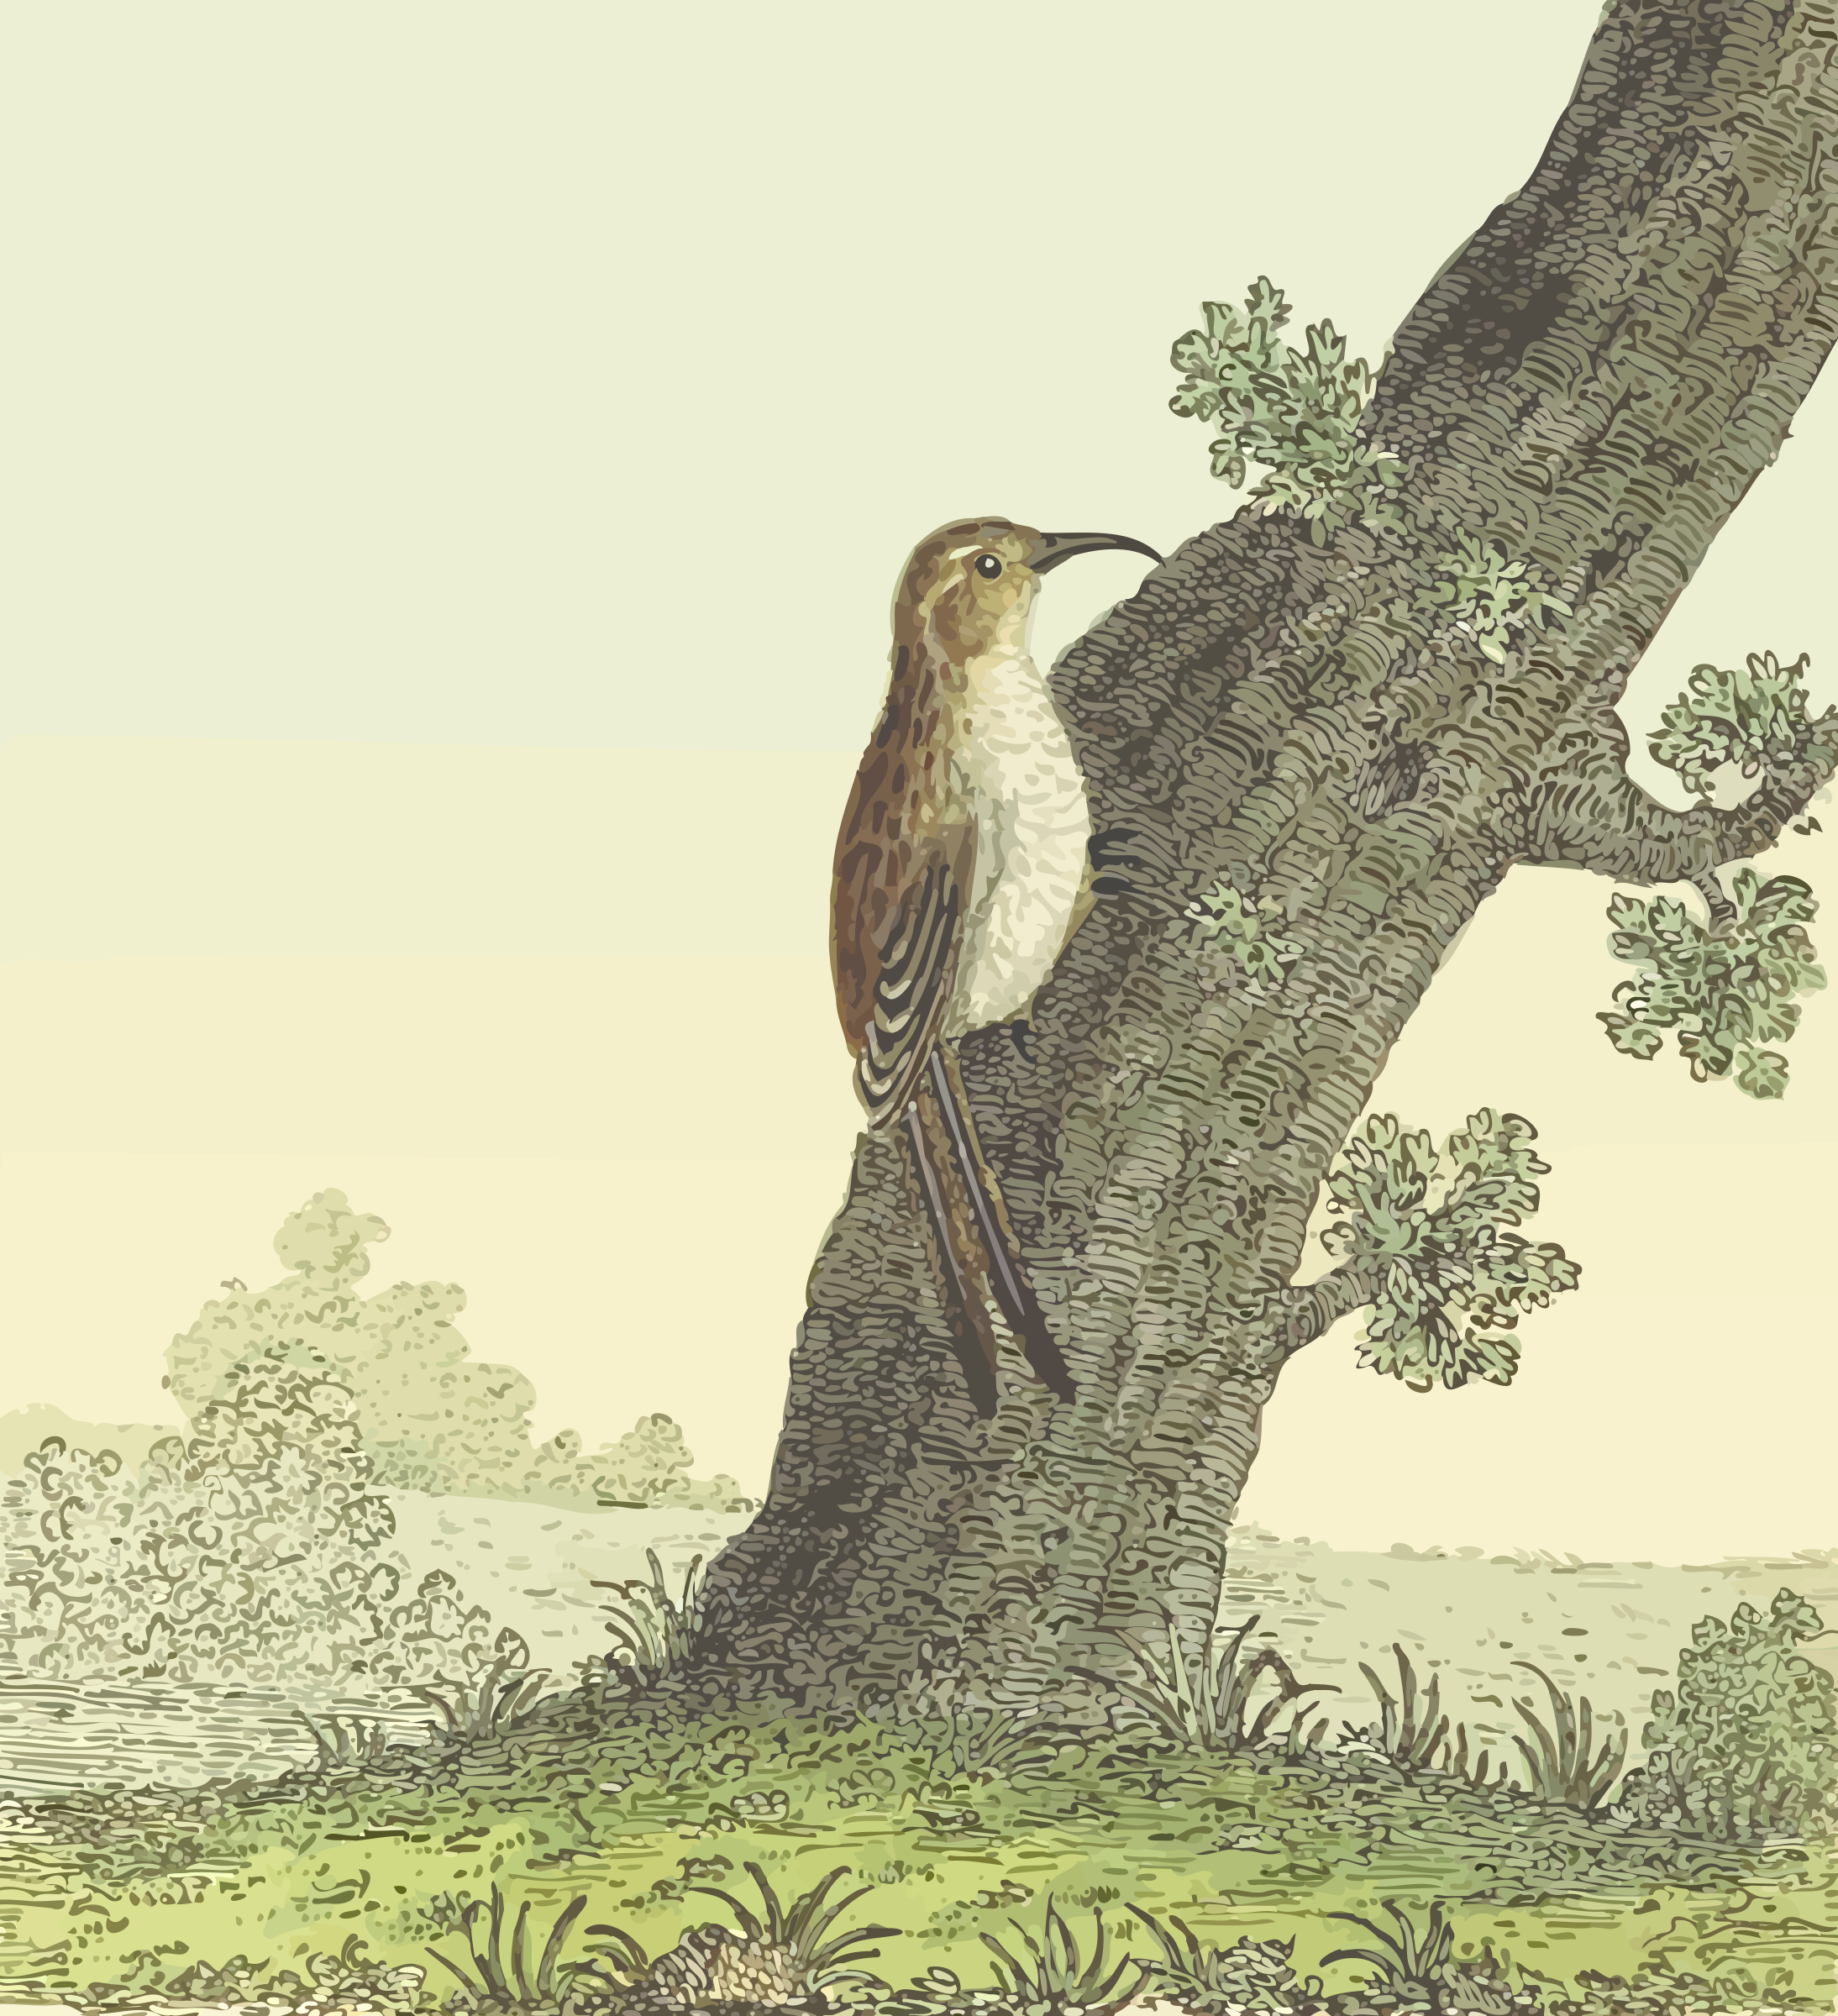 Common treecreeper (with background) by Firkin